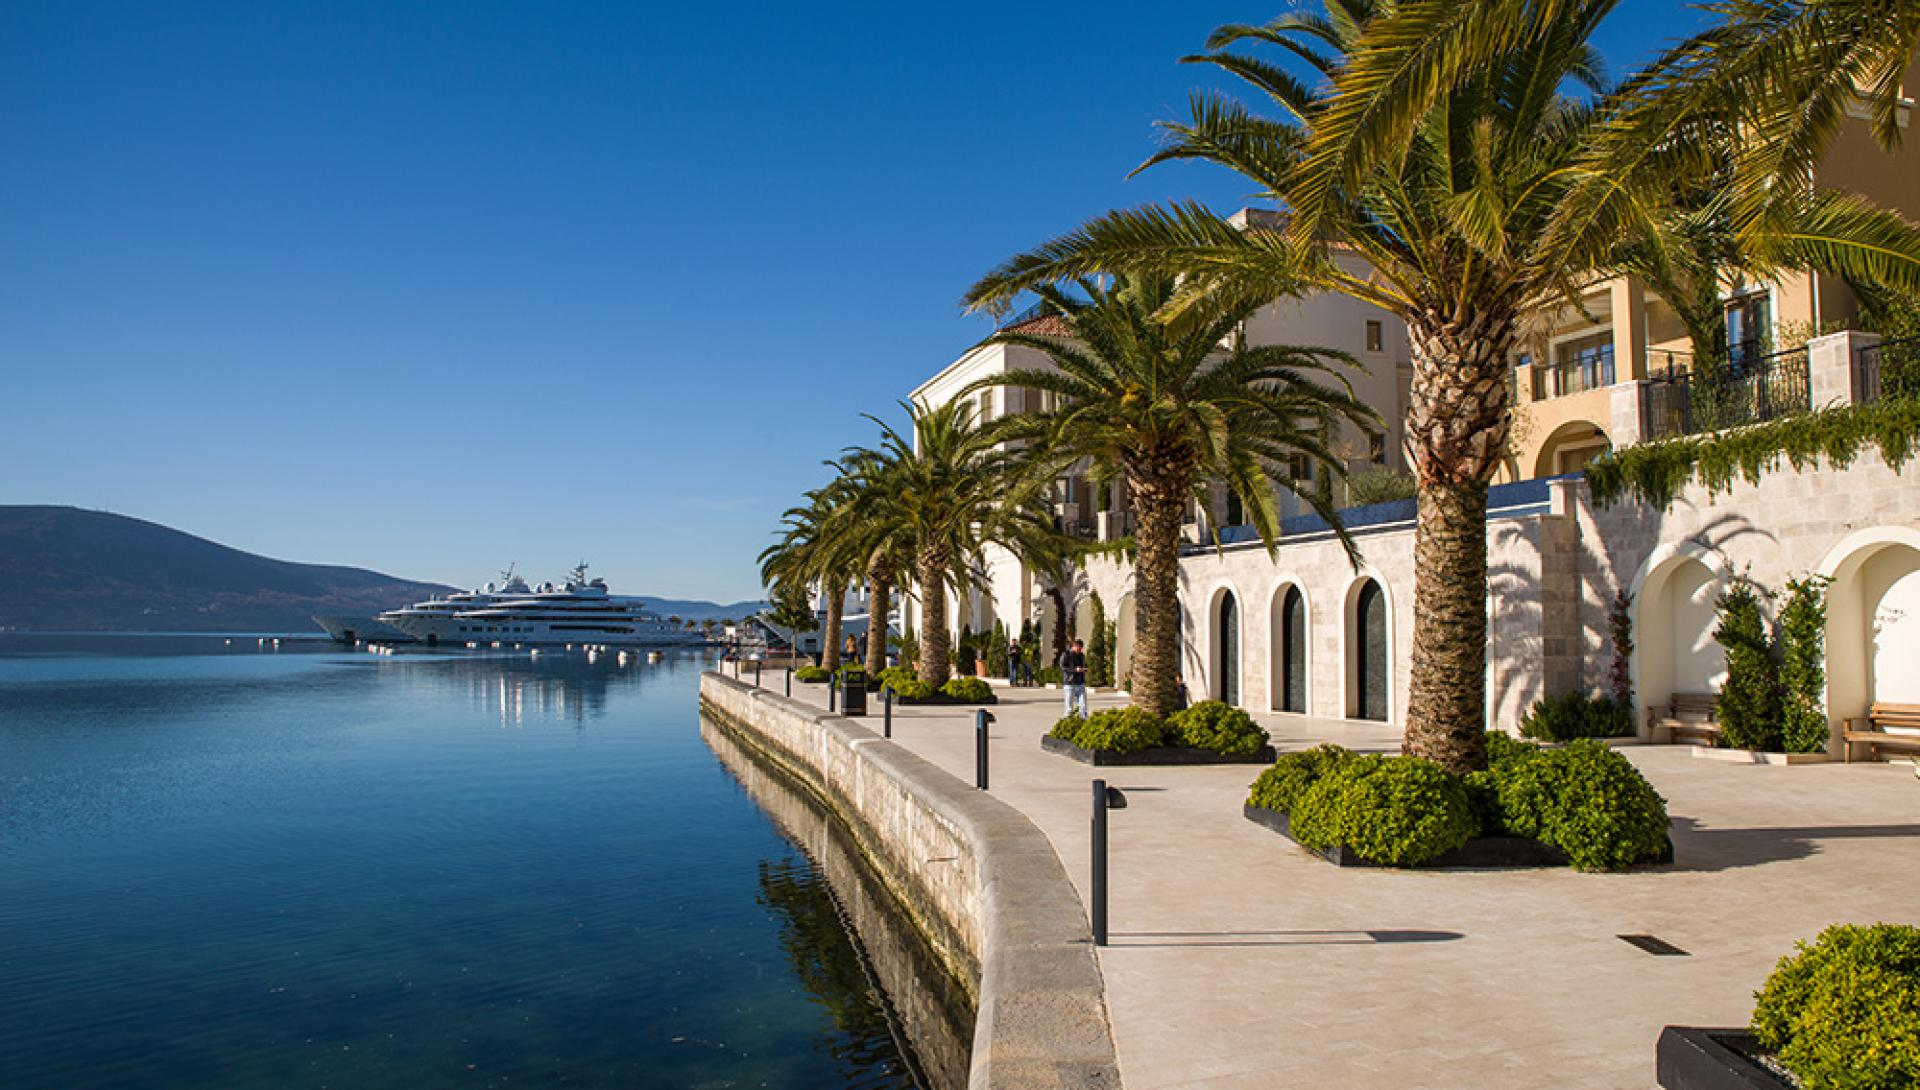 Tivat, Montenegro - Monterrasol private tours to Tivat, Montenegro. Travel agency offers custom private car tours to see Tivat in Montenegro. Order custom private tour to Tivat with departure date on request.